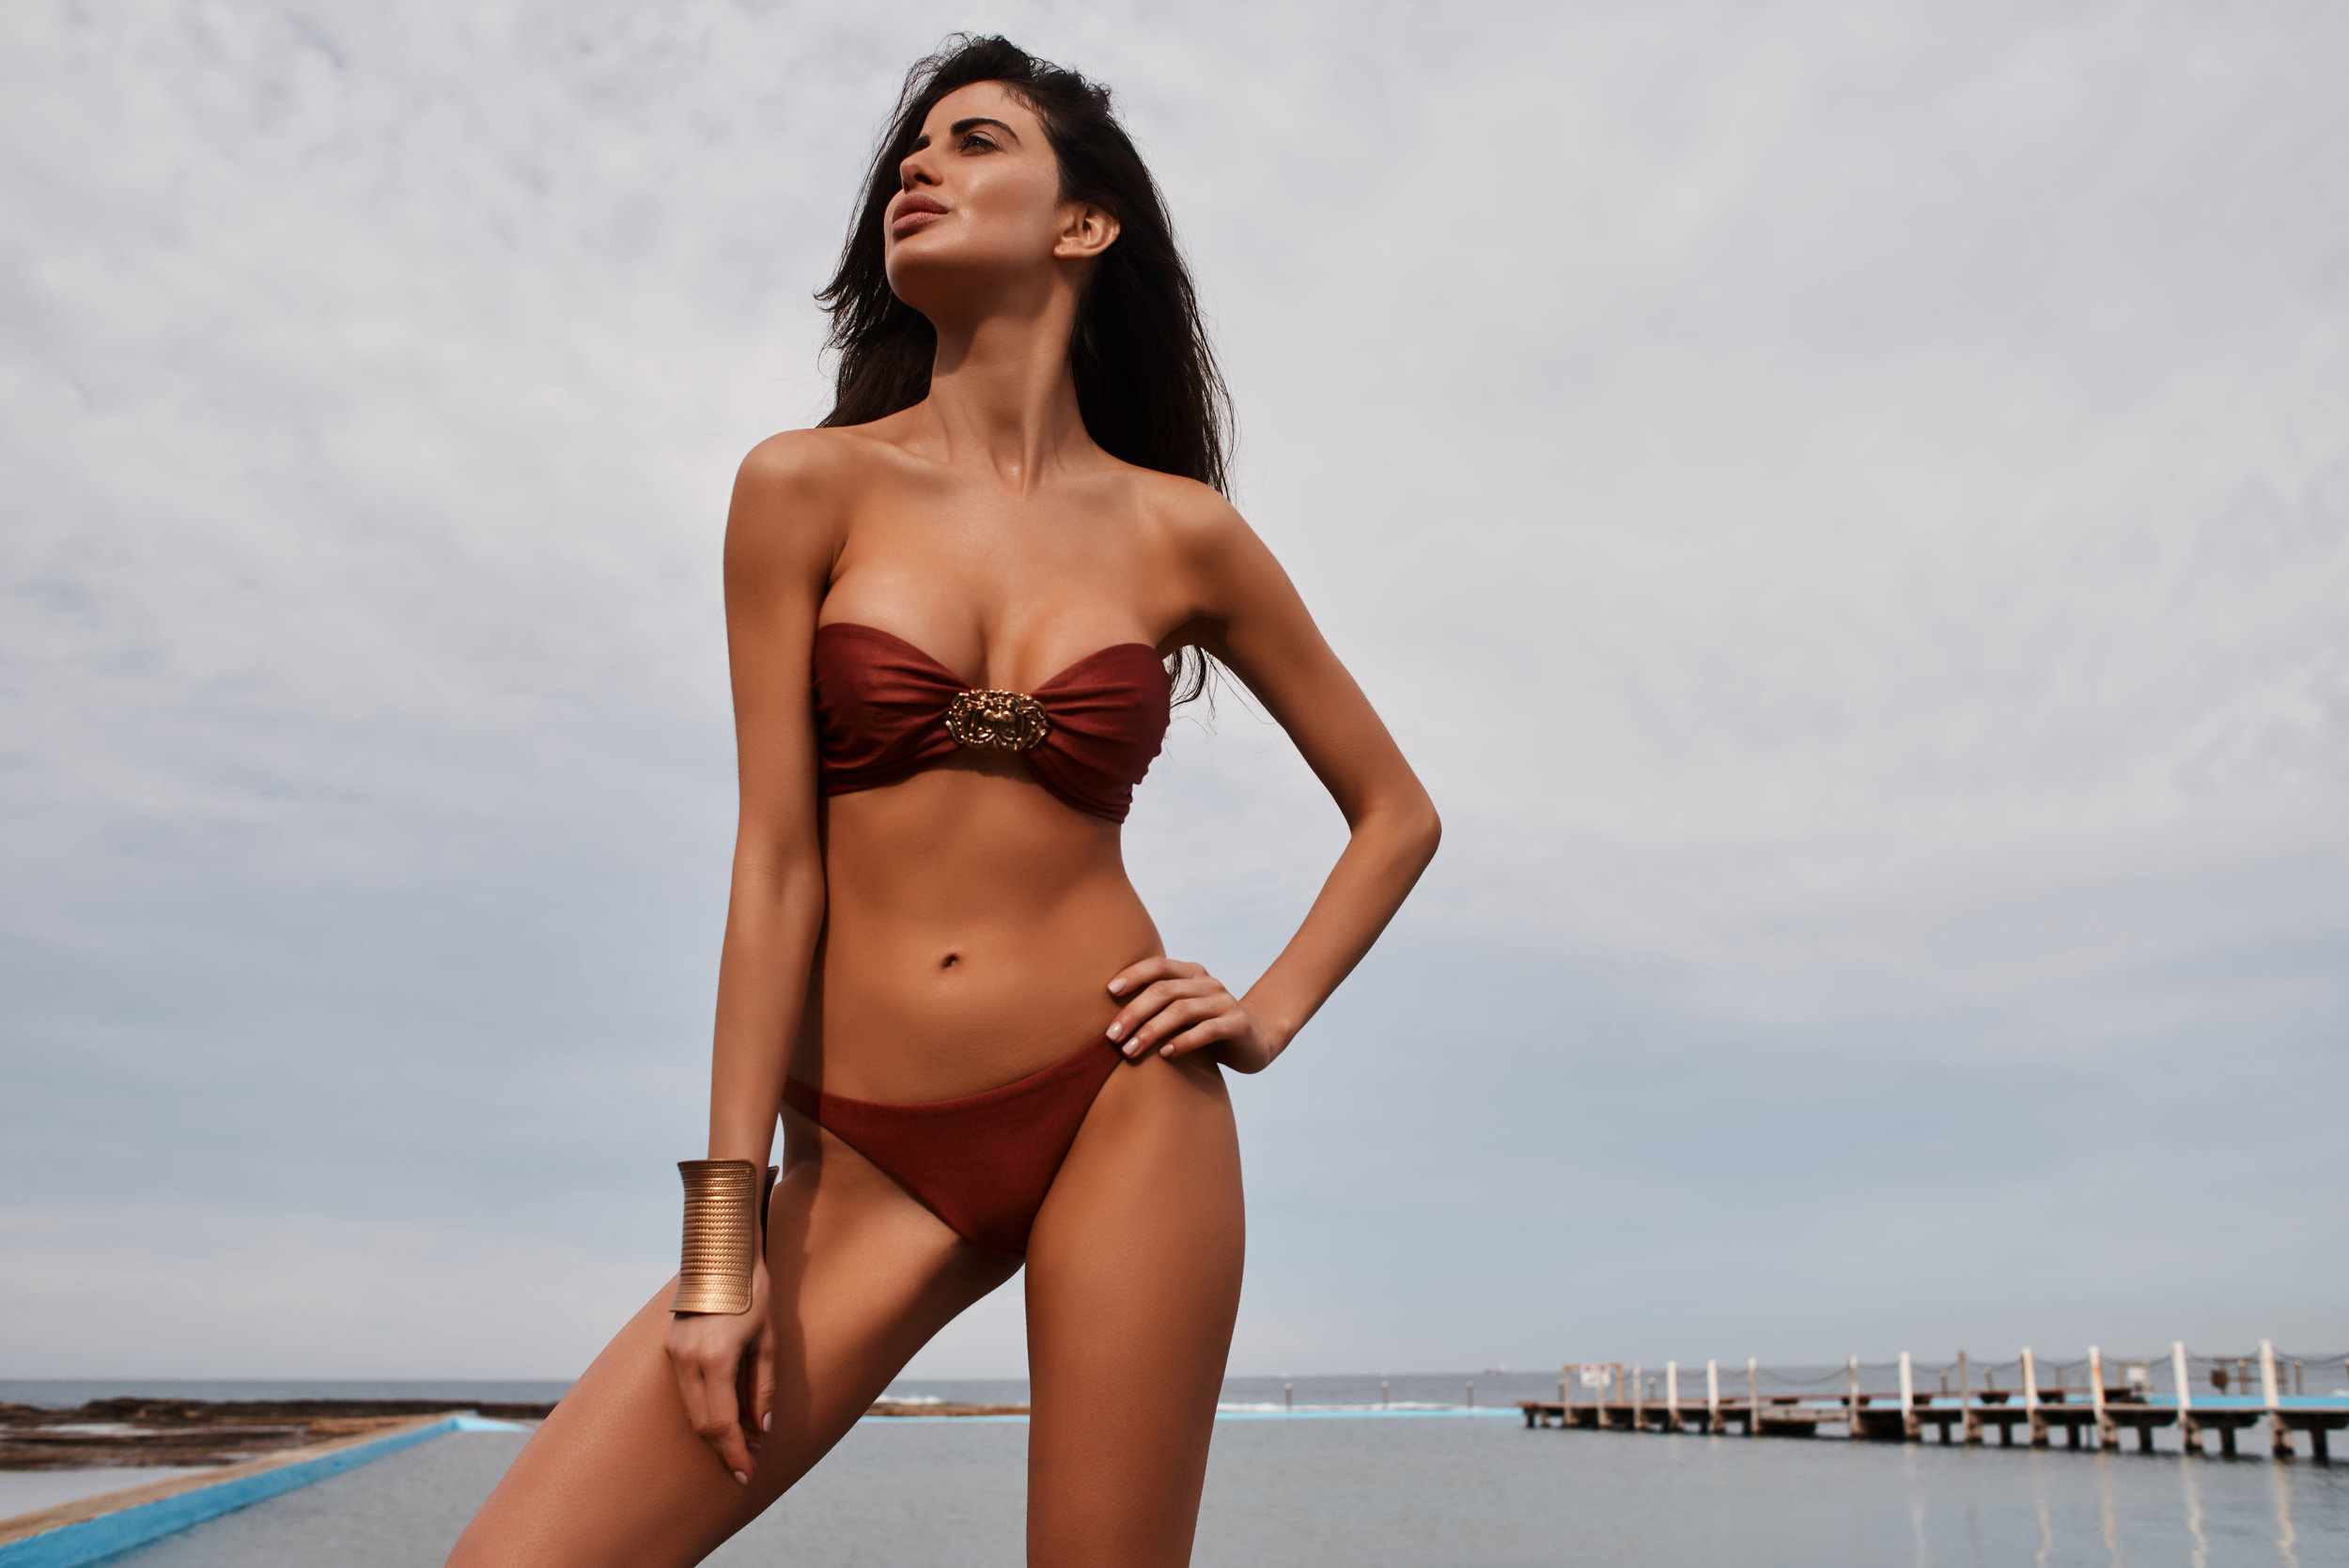 La Koi epitomizes femininity - Styles are intricate, yet versatile enough for all shapes and sizes. Sleek sensuality and soft sophistication are showcased in the stunning swim designs